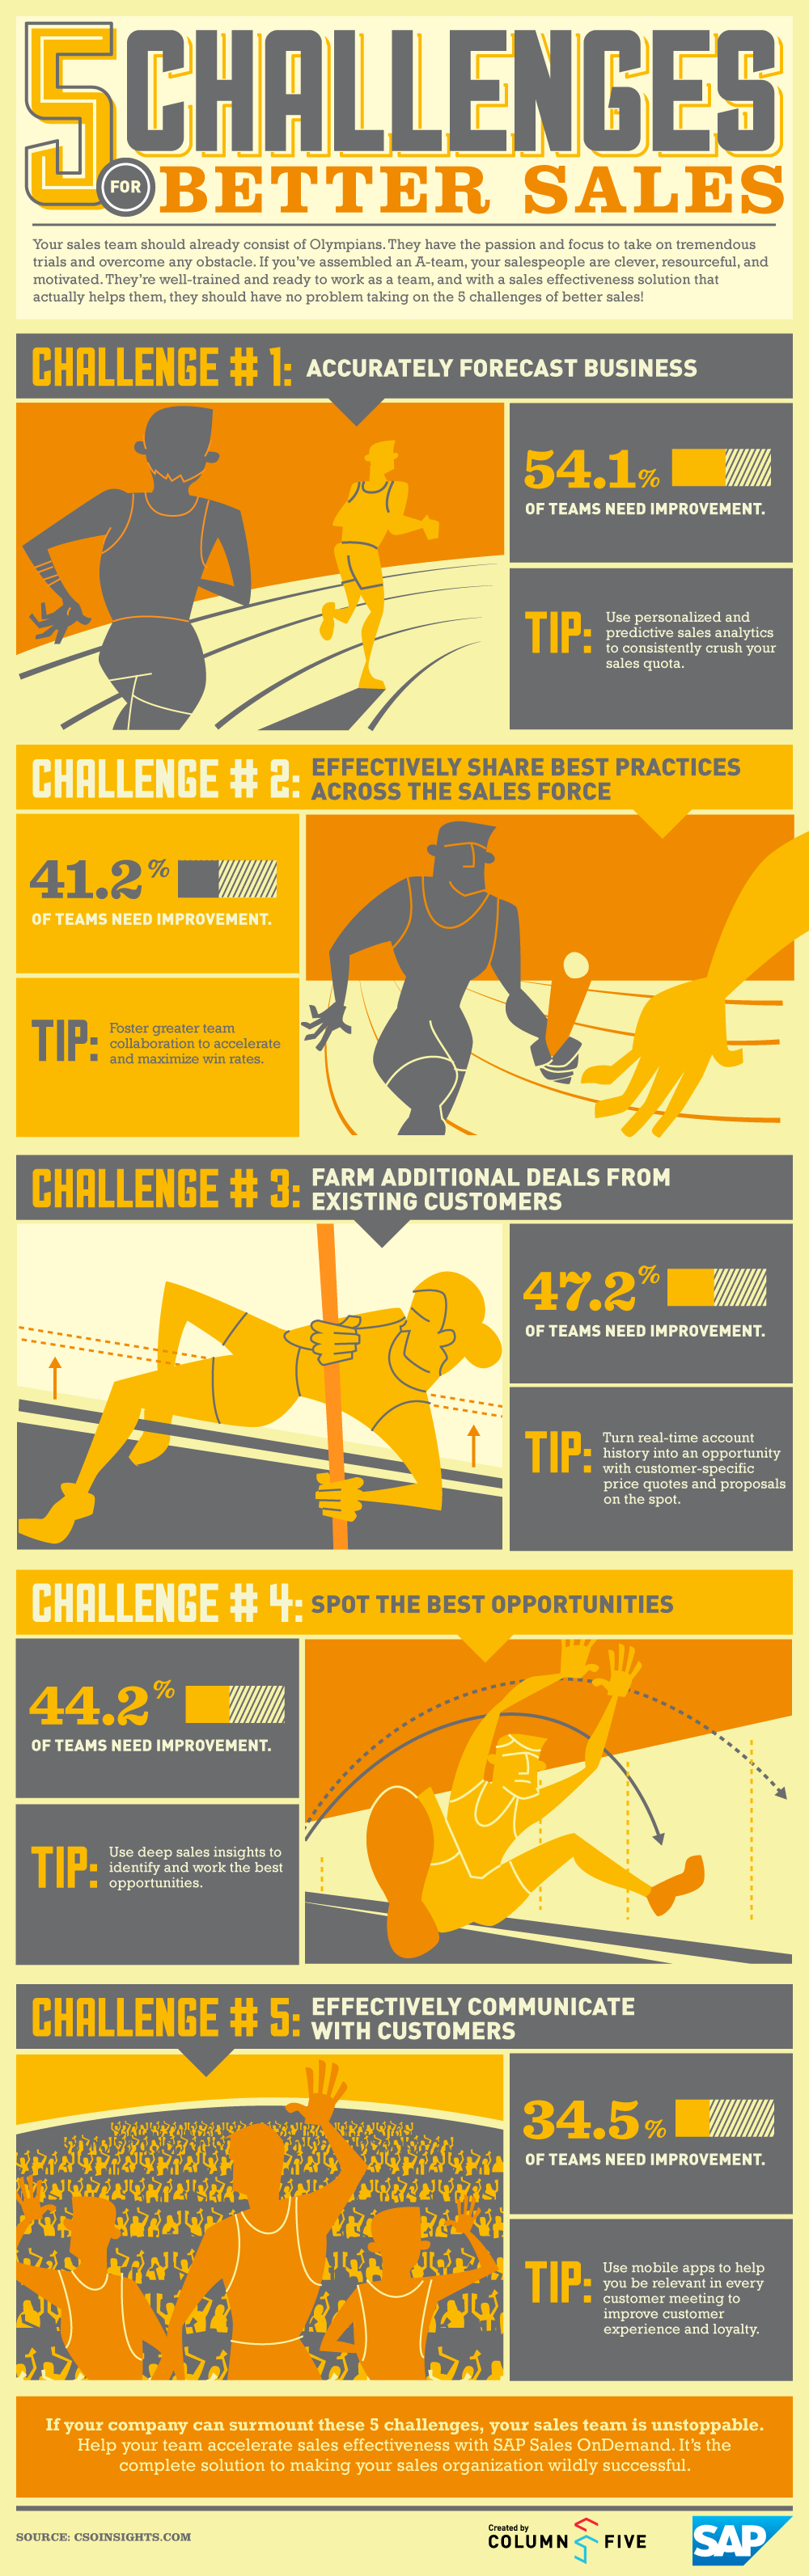 SAP Sales Effectiveness Infographic